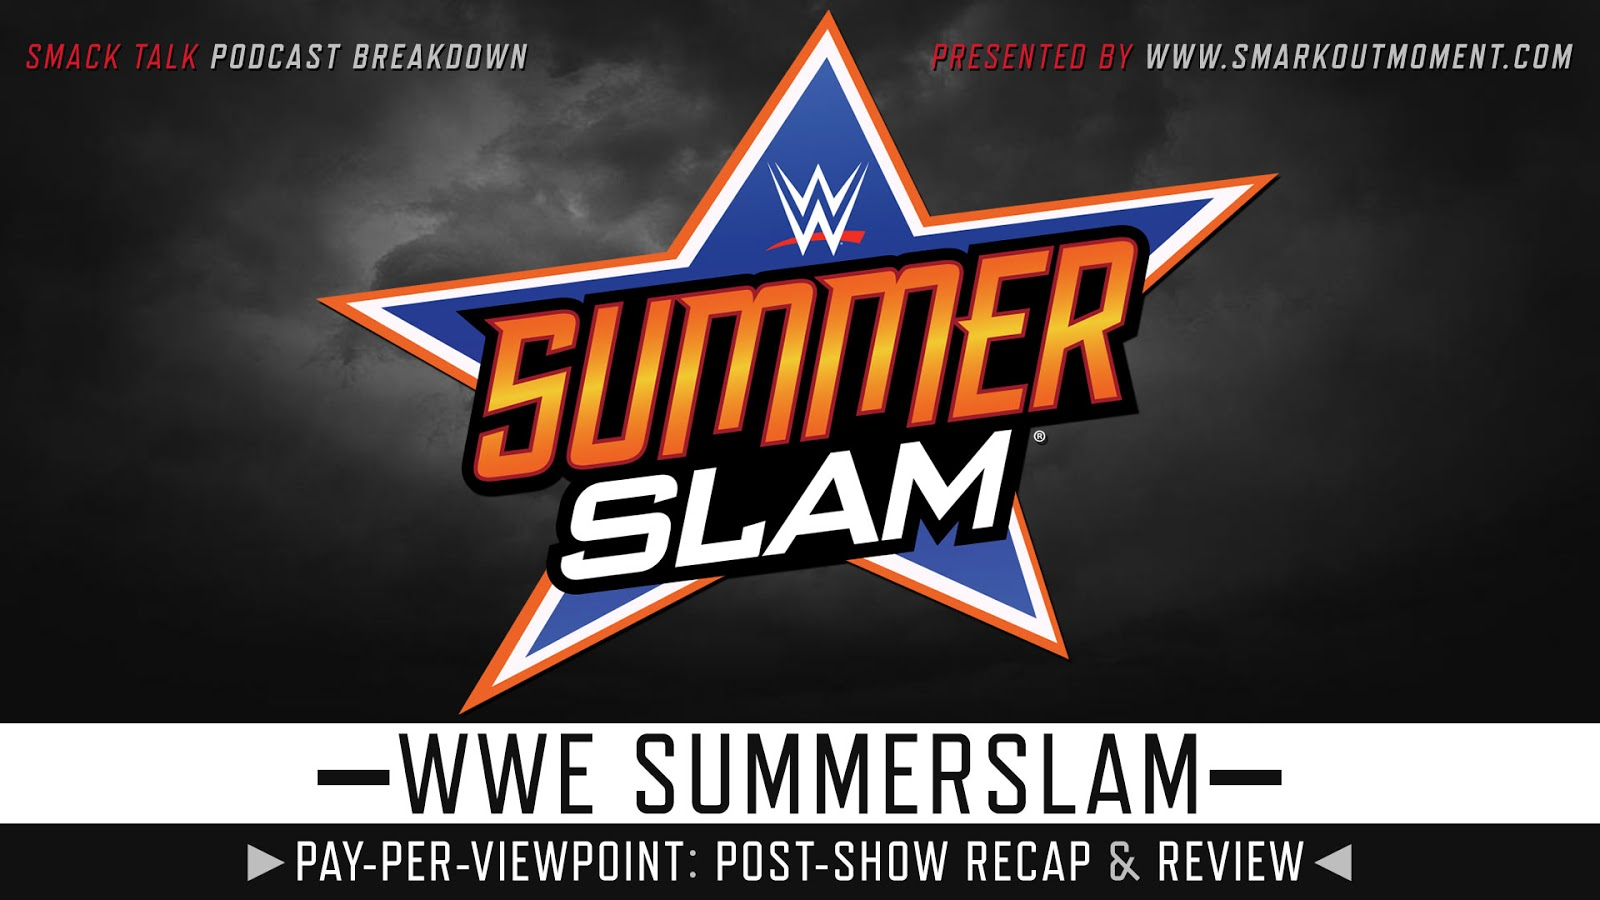 WWE SummerSlam 2019 Recap and Review Podcast